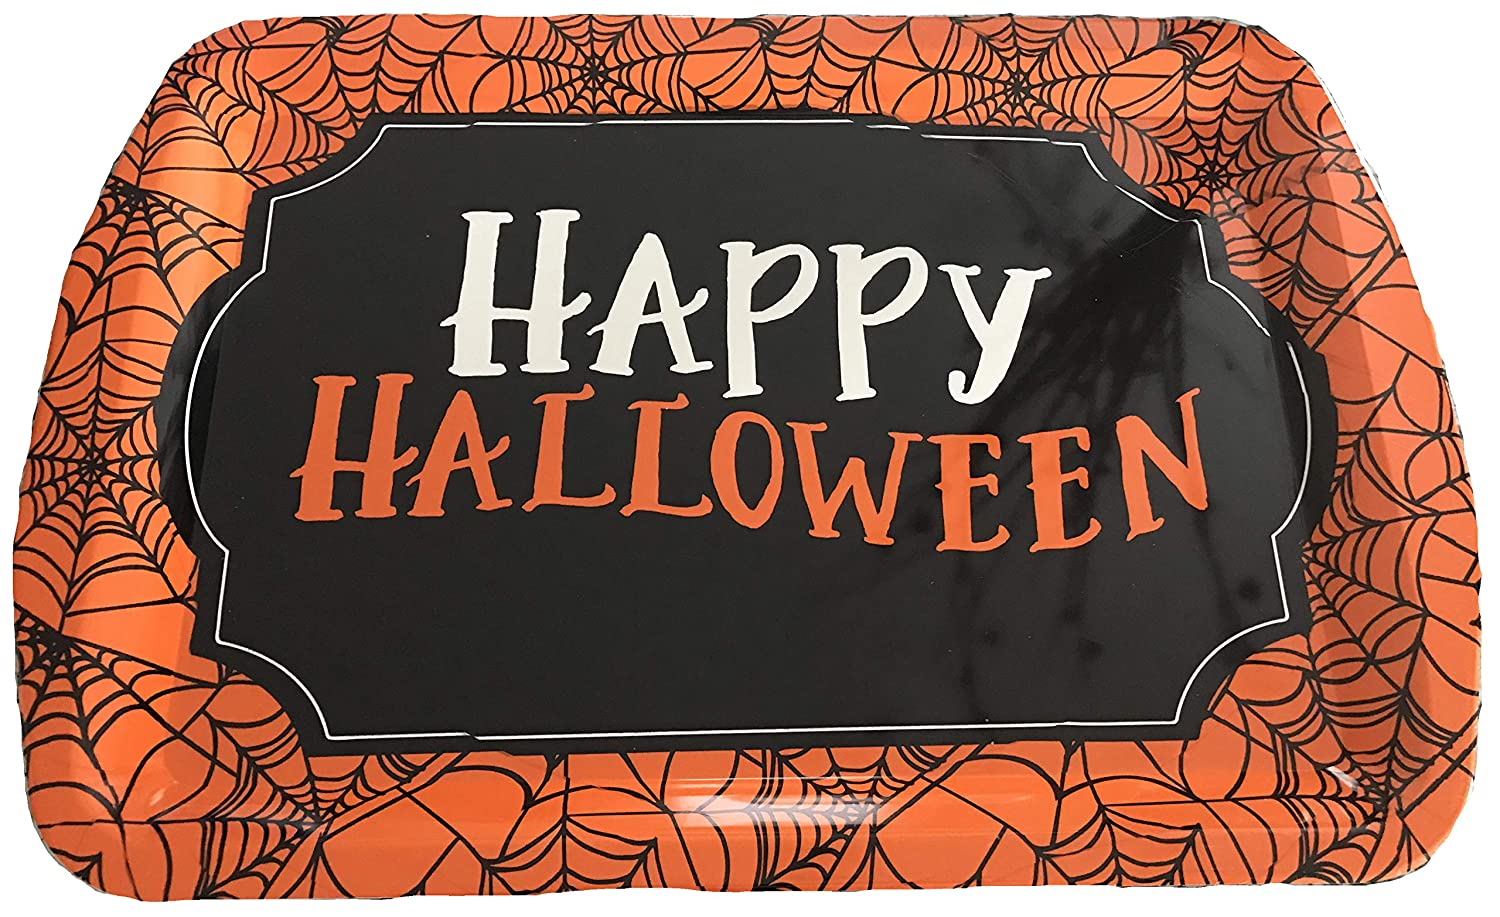 Halloween Serving Tray, Heavyweight Quality, Perfect For Trick or Treaters, Cookies, Cupcakes, Candy, Parties, School Spookytime